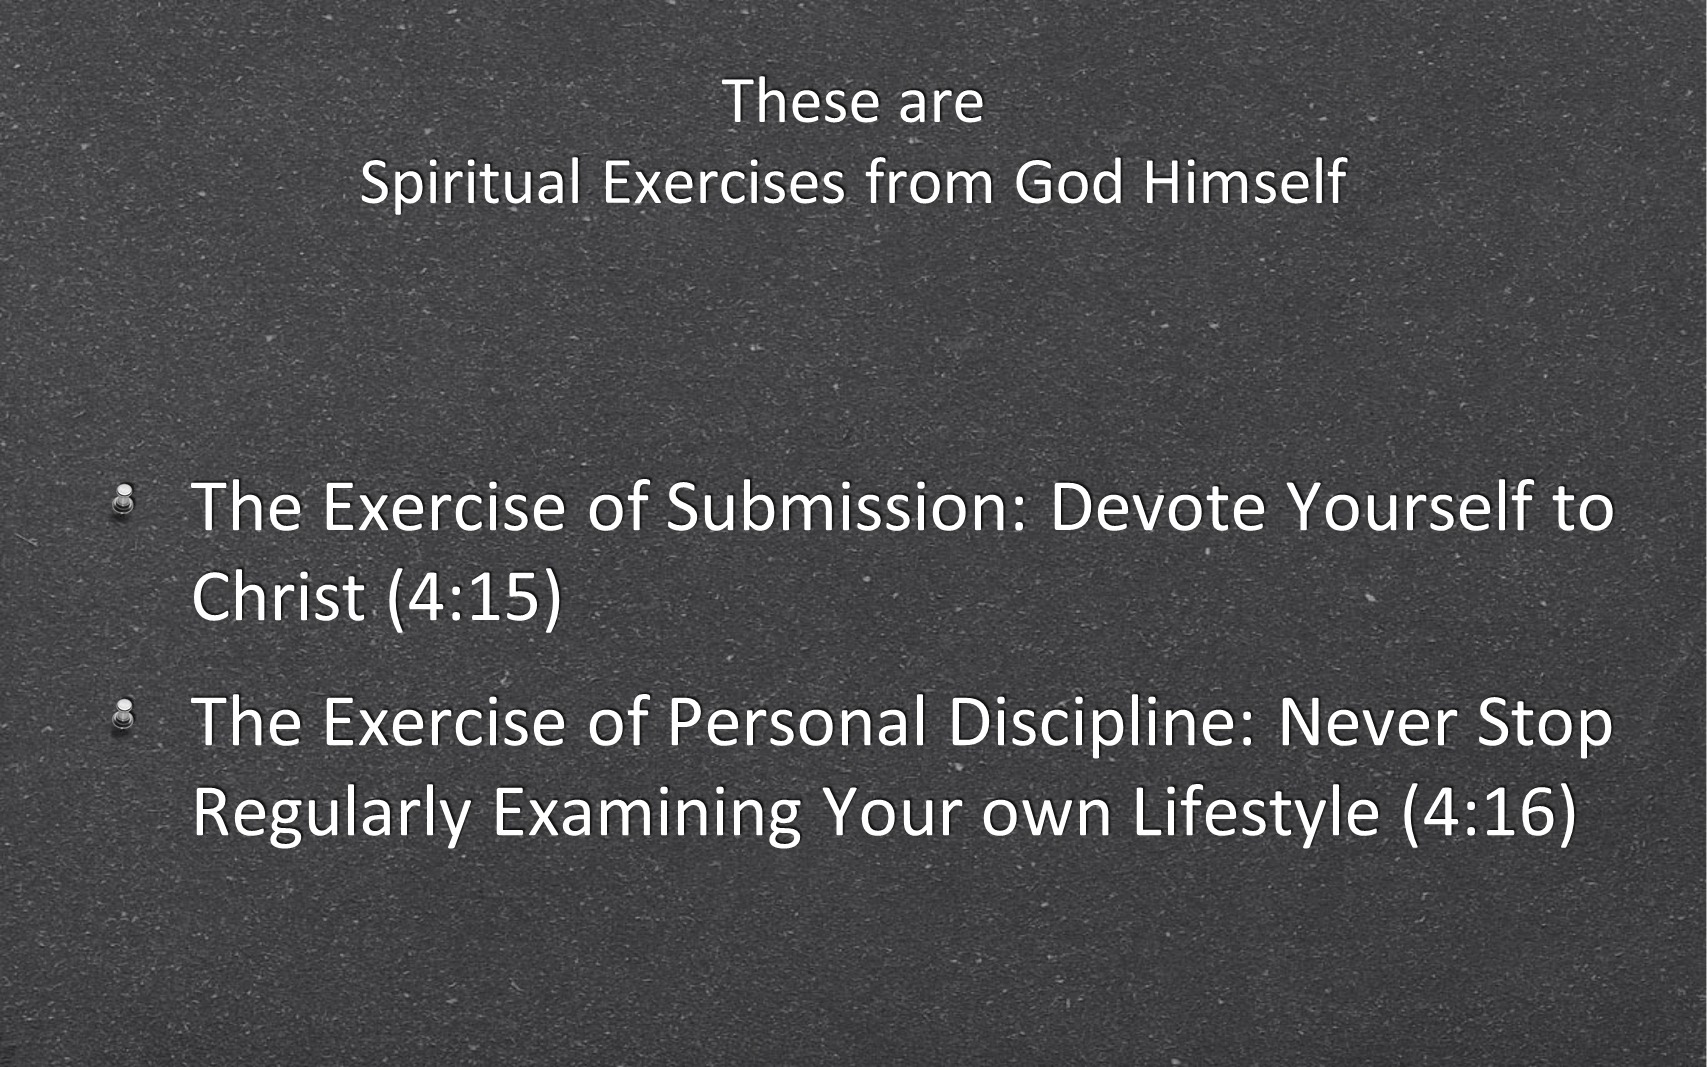 ESH-01 - Biblical Exercises For Spiritual Health & Fitness in 2014 (20)